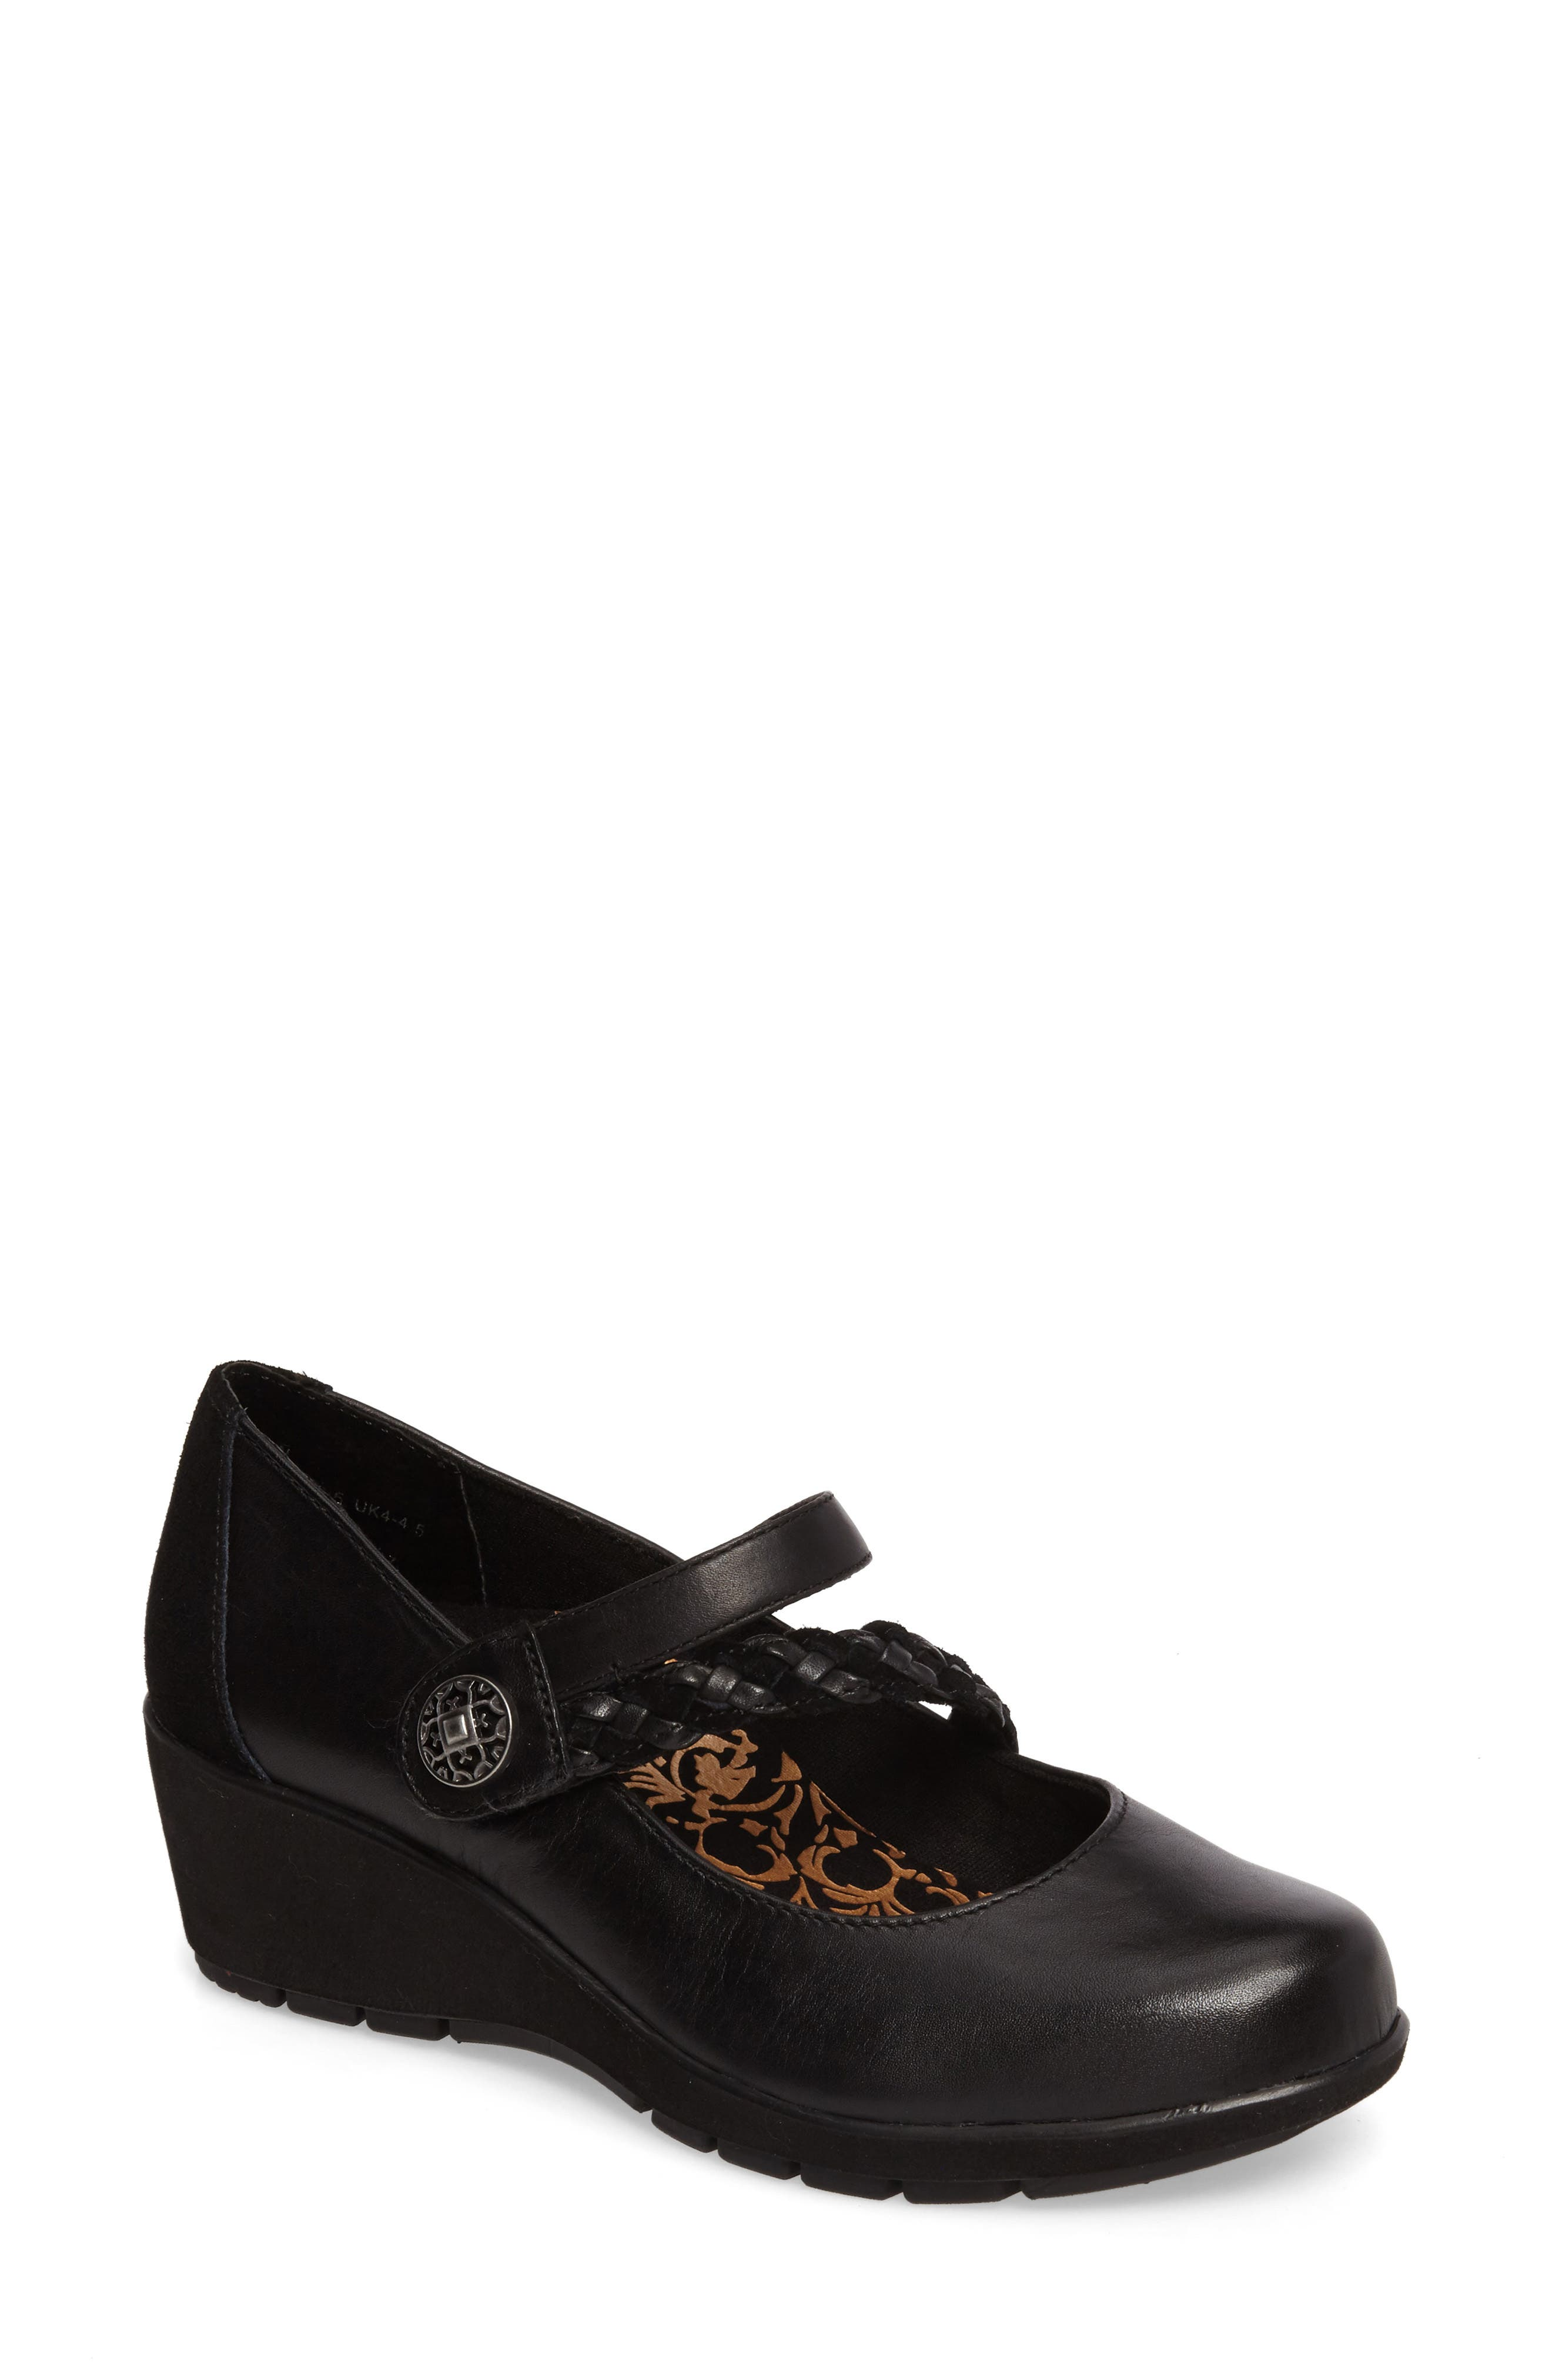 Ivy Mary Jane Wedge,                         Main,                         color, Black Leather